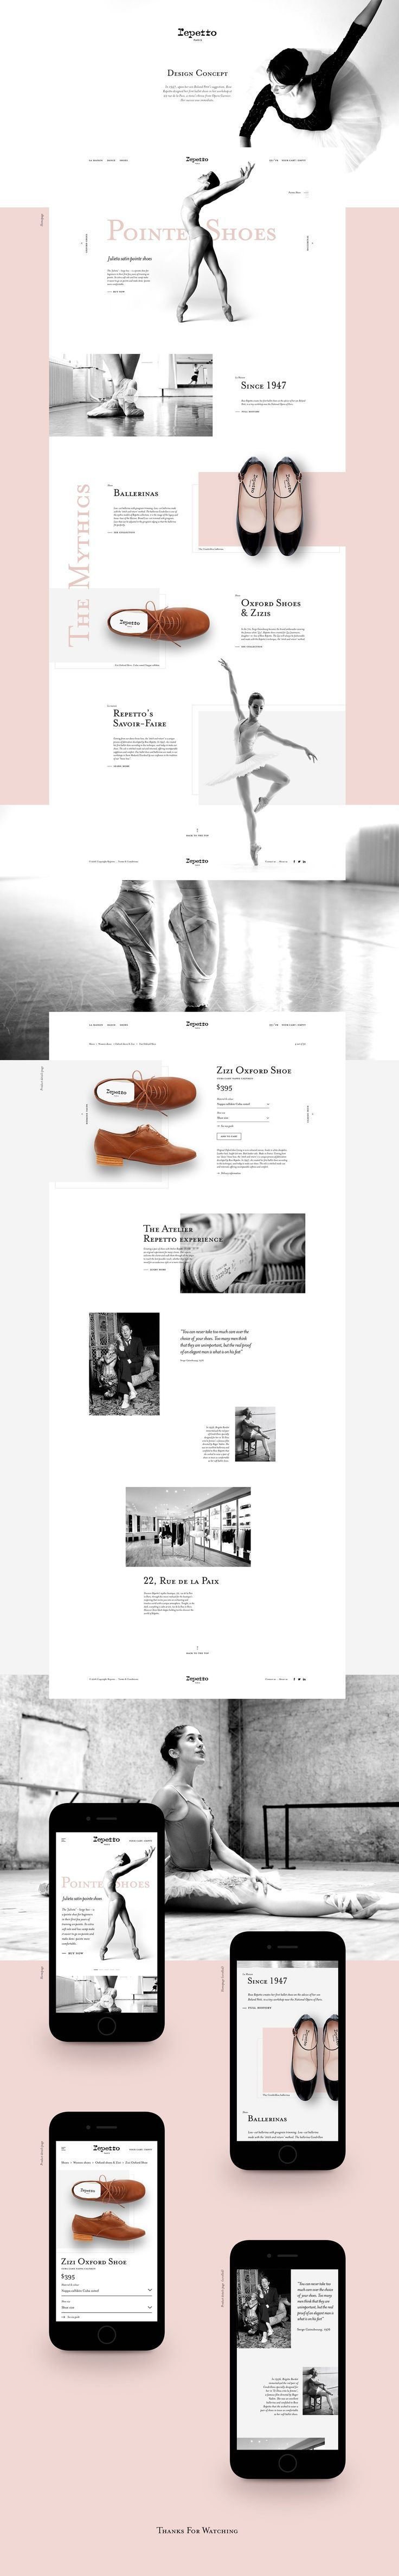 """Check out this @Behance project: """"Repetto Design Concept"""" https://www.behance.net/gallery/46650915/Repetto-Design-Concept?utm_content=buffer99baa&utm_medium=social&utm_source=pinterest.com&utm_campaign=buffer"""